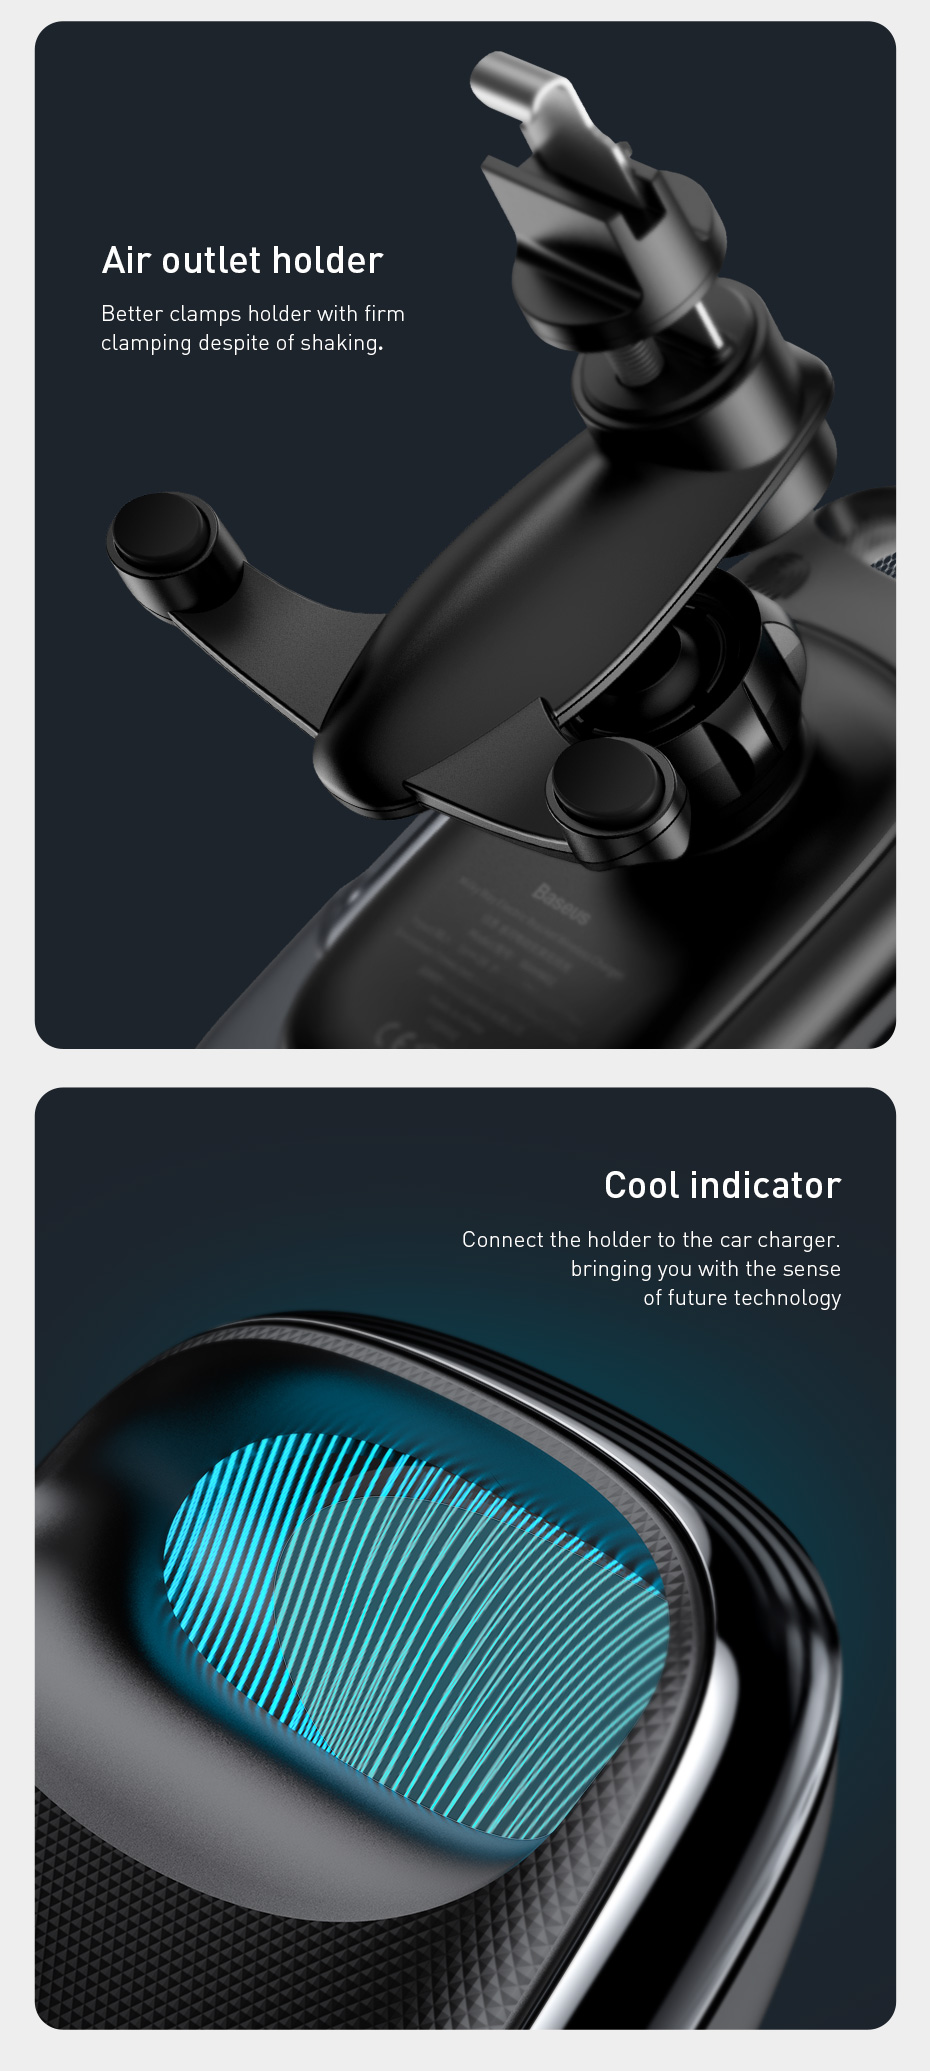 Baseus 15W LED Intelligent Auto Lock Electric Bracket Stable Wireless Car Charger Quick Charge Phone Holder for iPhone 11 Pro Max for Samsung S10+ S9 HUAWEI P30 Pro Xiaomi M9 Redmi K30 LG Numia